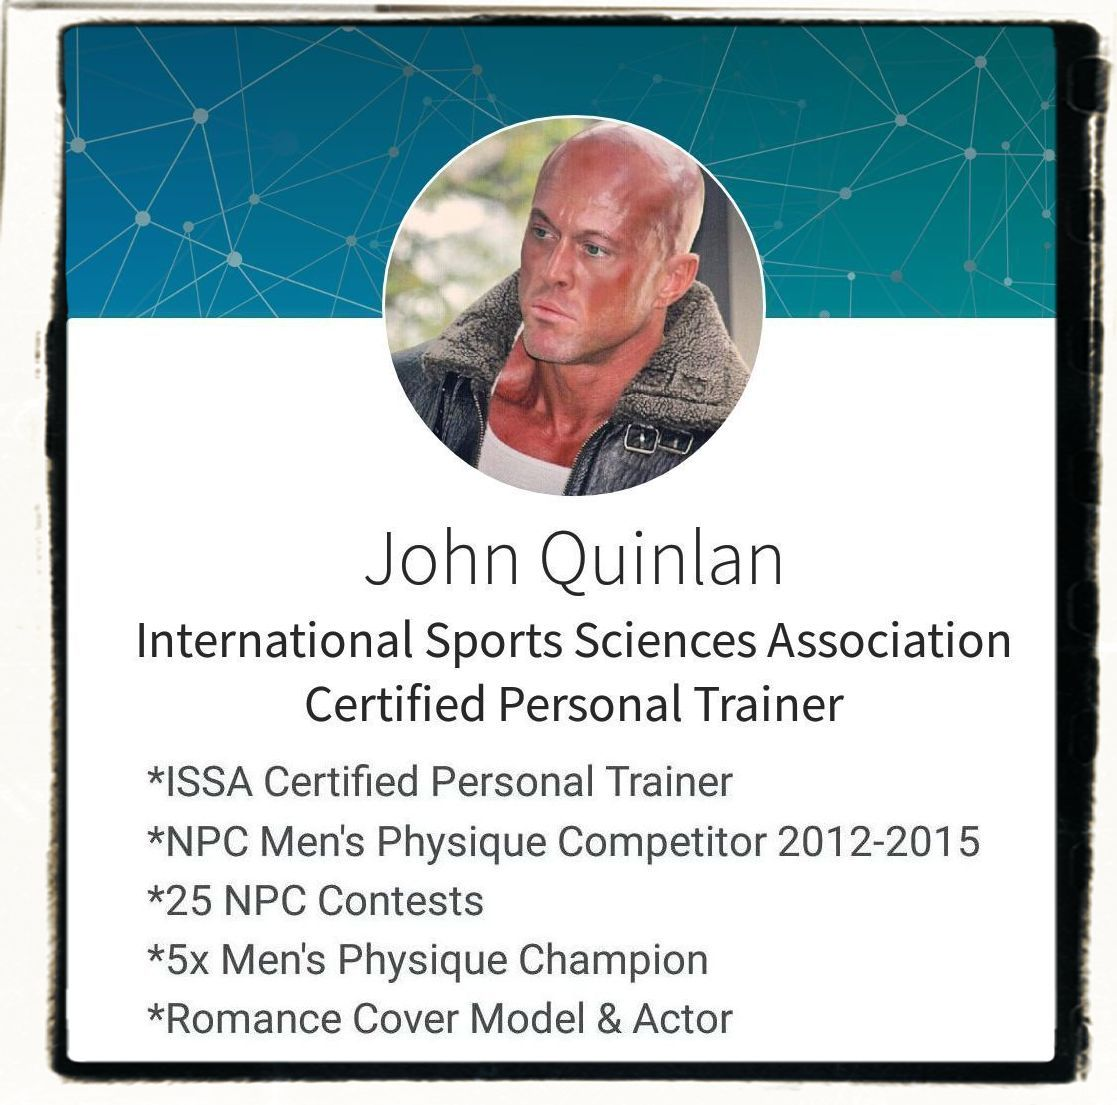 John quinlan issa official certified personal trainer john quinlan issa official certified personal trainer johnquinlan model actor john joseph quinlan pinterest certified personal trainer and 1betcityfo Images